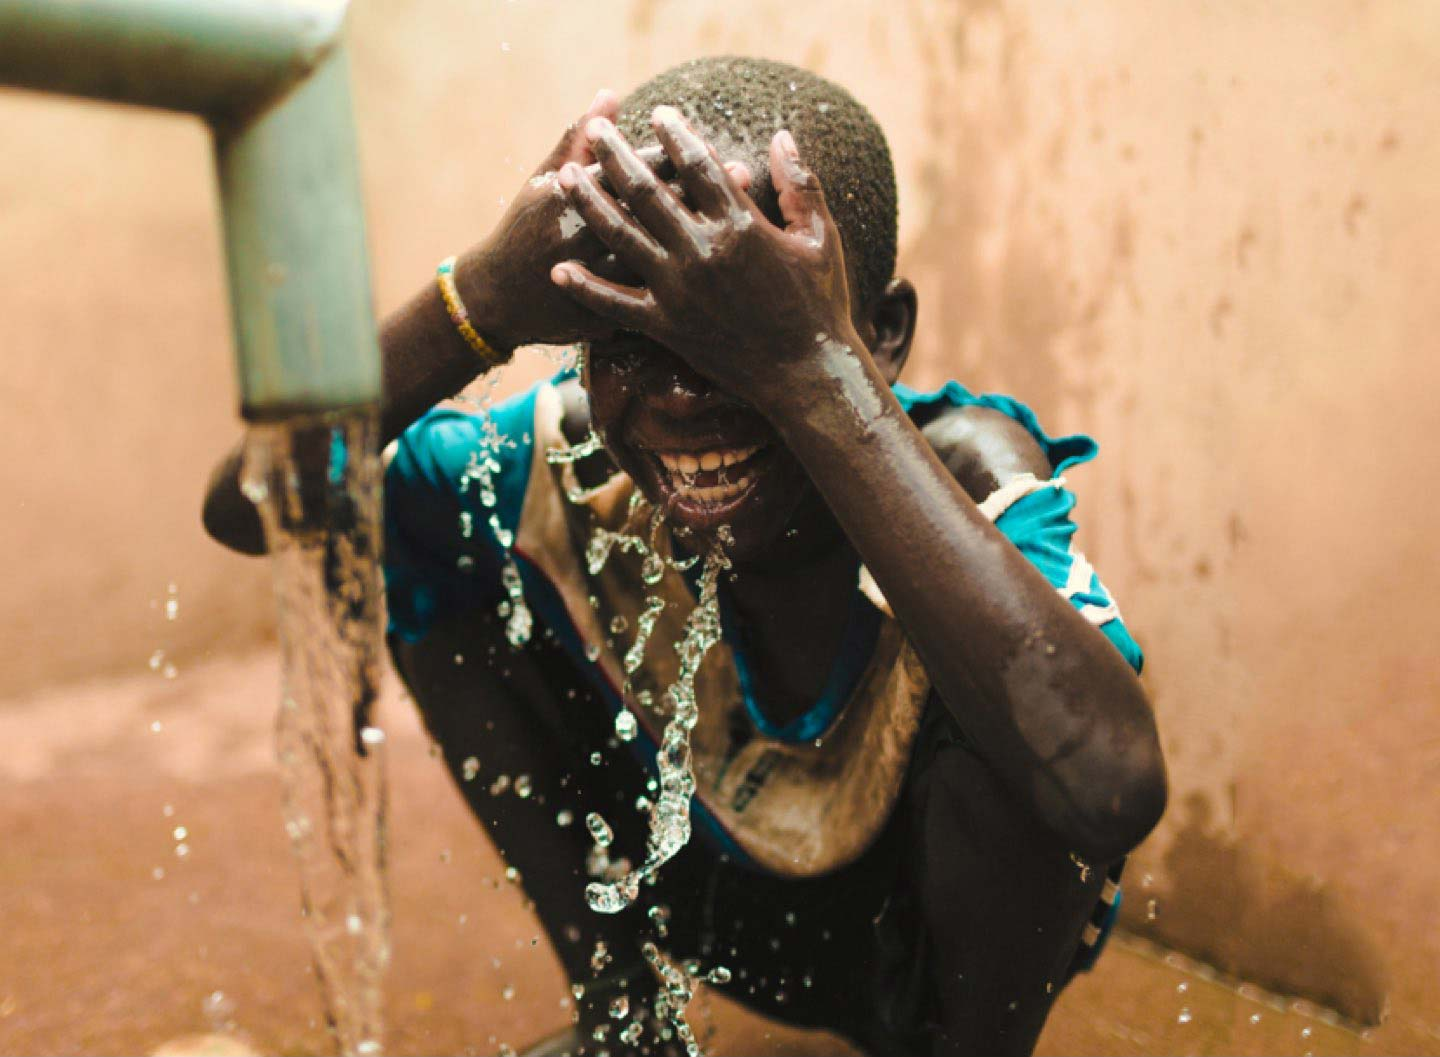 Source: Charity Water; Courtesy Photo